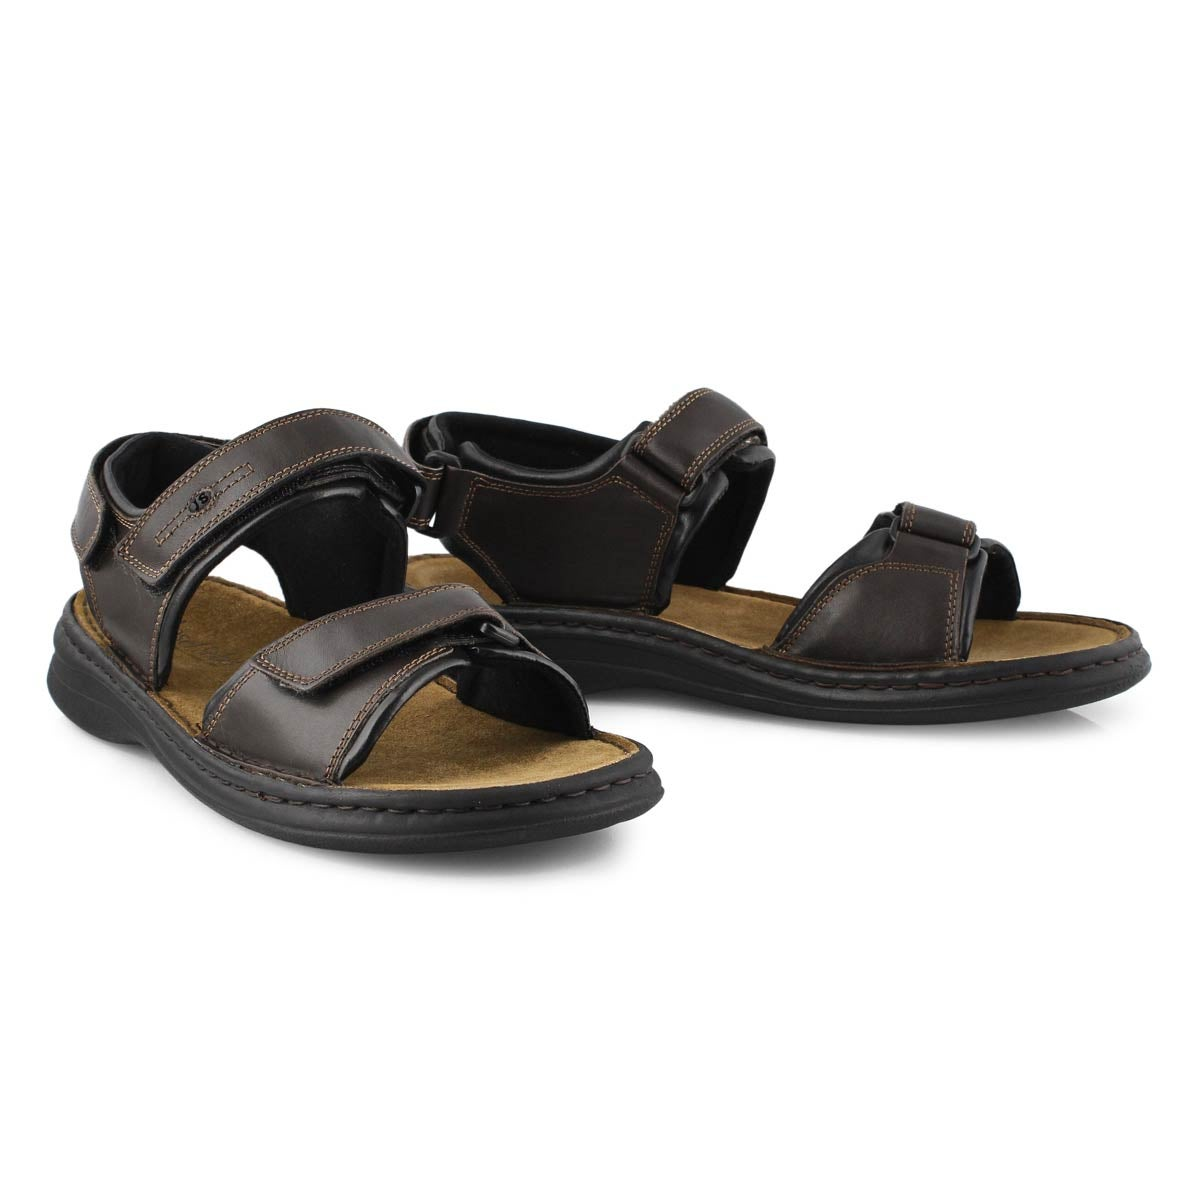 Mns Rafe brown casual sandal-WIDE